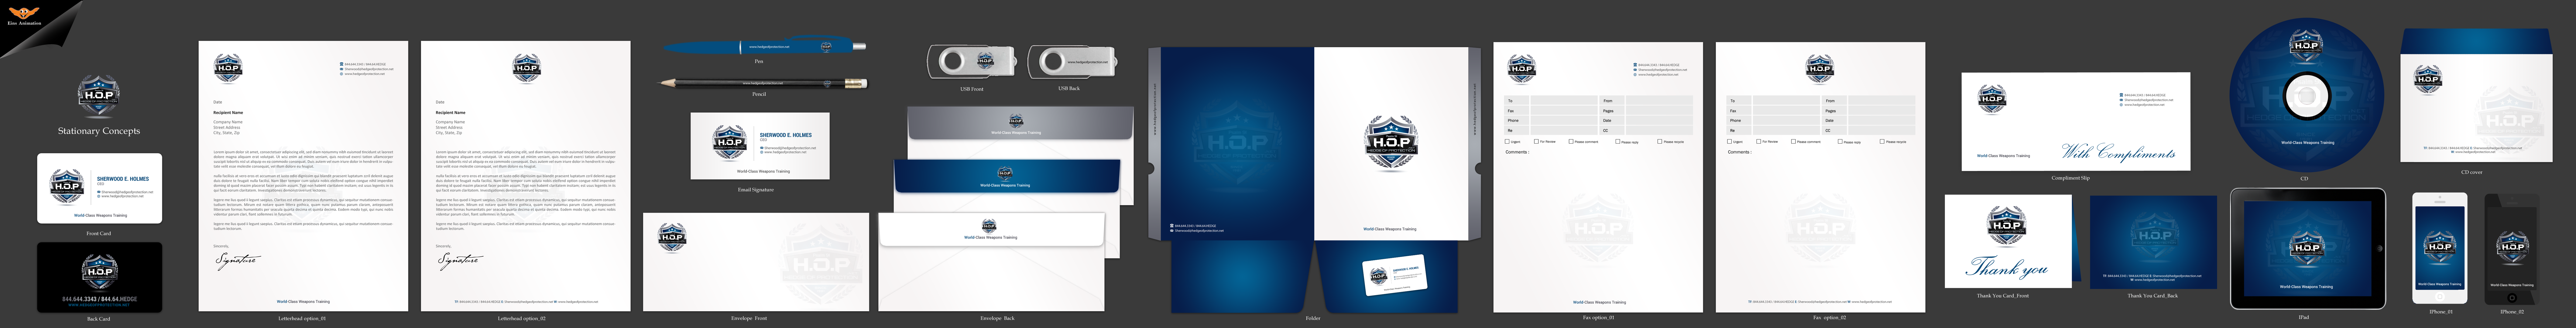 Business card/Letthead/Envelope design for WEAPONS TRAINING & SECURITY COMPANY - Security